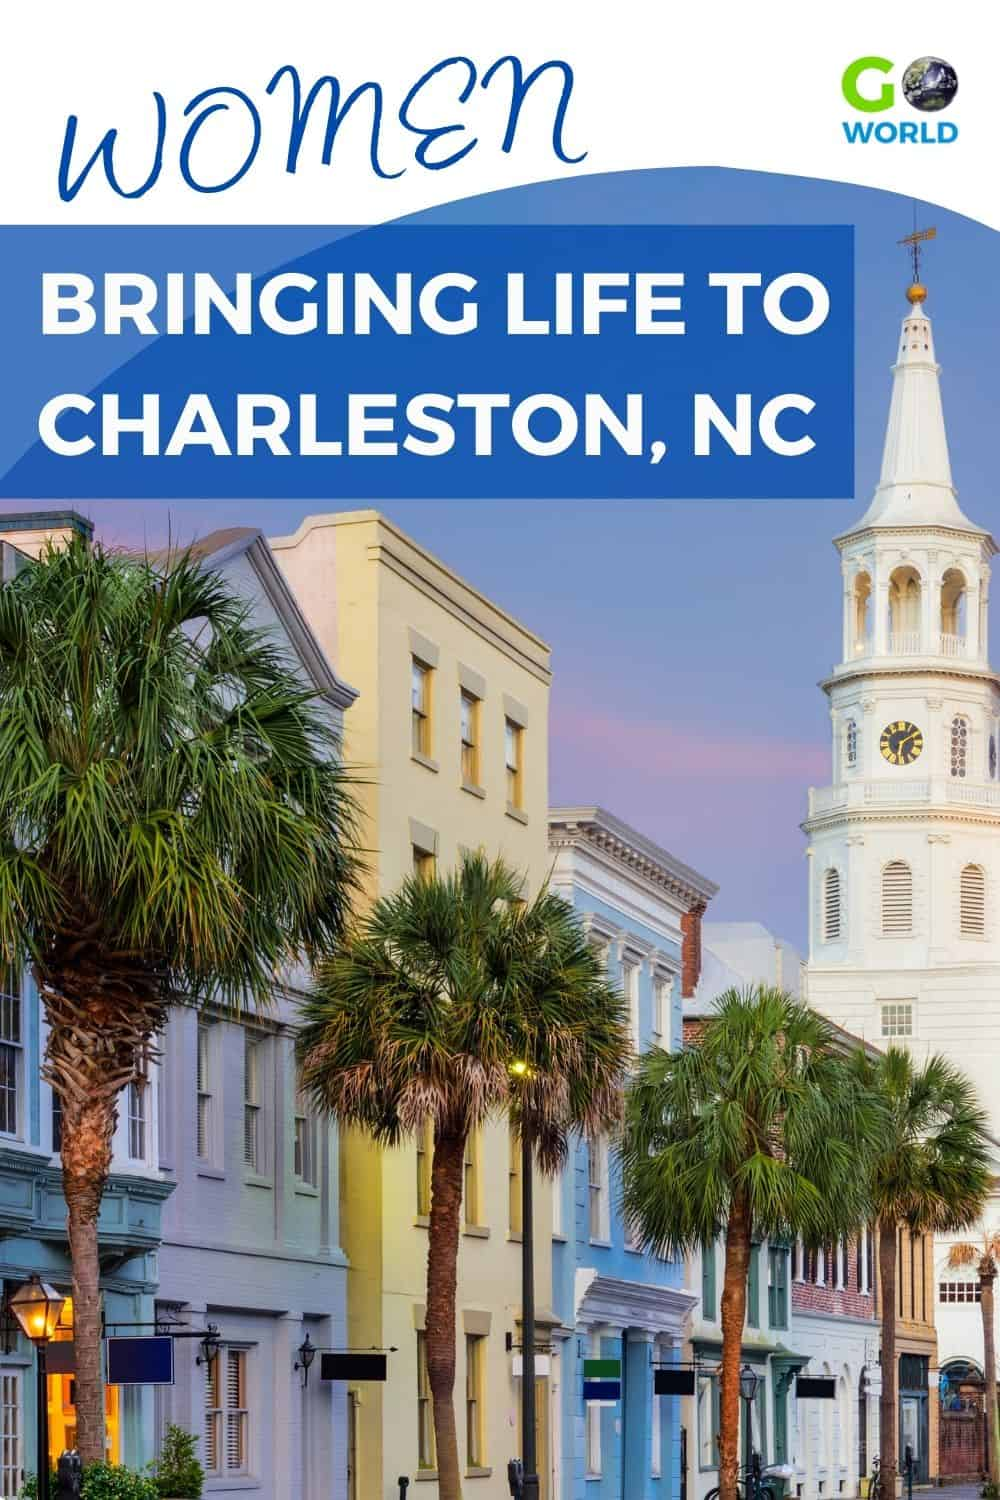 Women of Charleston have been making a difference for decades. Meet these entrepreneurs in Charleston hotels, restaurants & other businesses. #TravelNC #Charlestonnorthcarolina